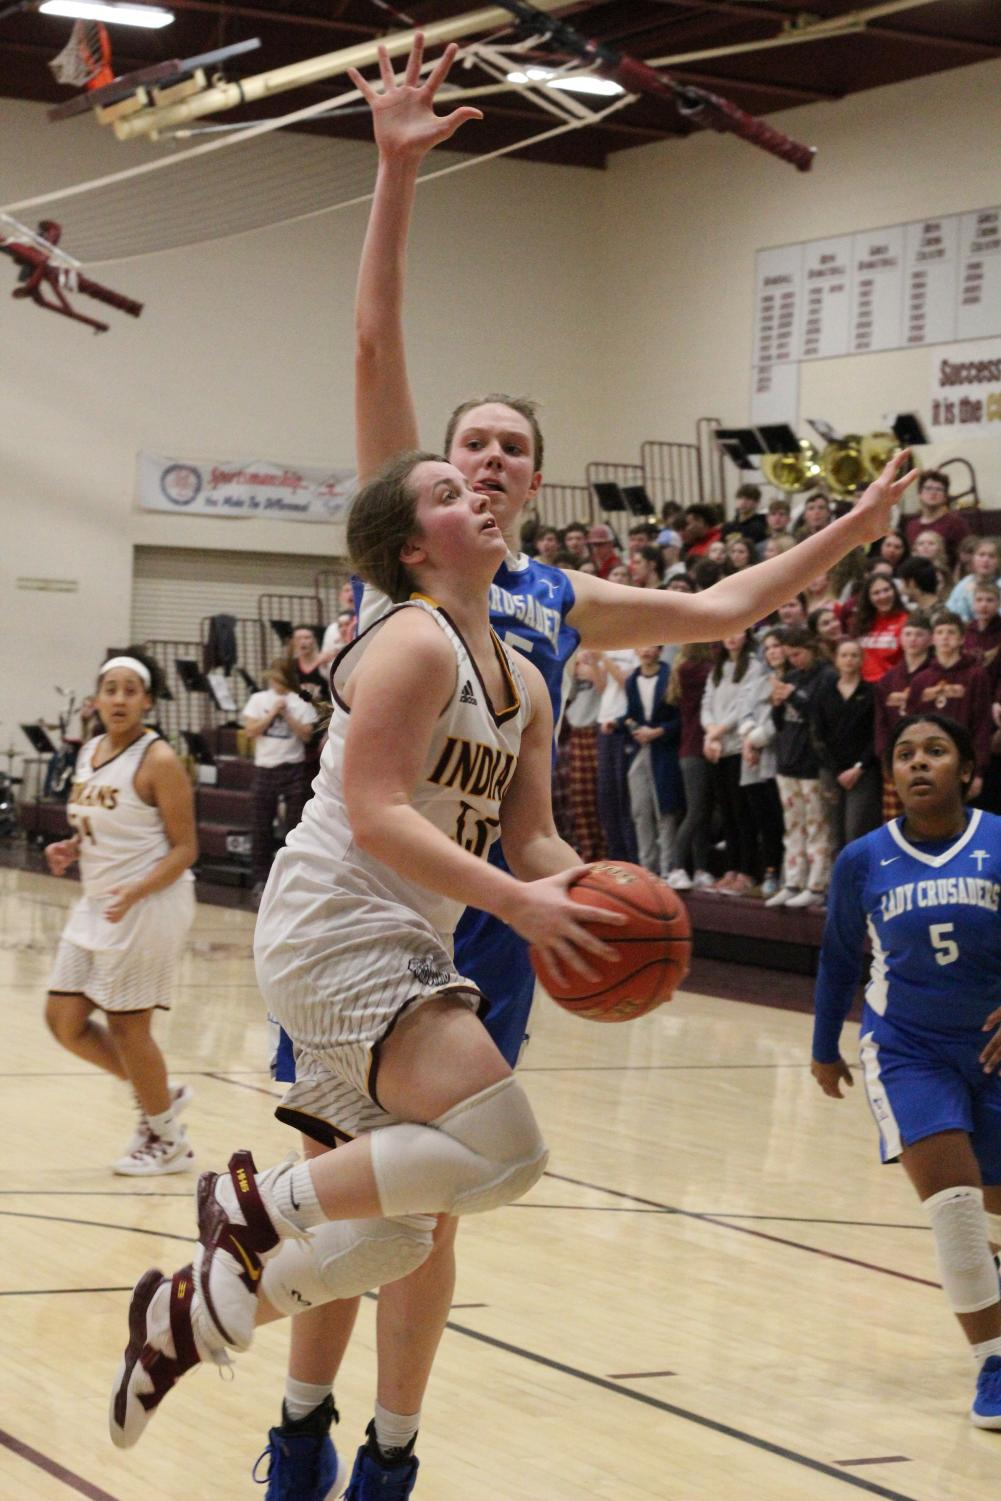 Junior Brooke Denning attempts a basket against Kapaun Mt. Carmel at the first round of Sub-State on Feb. 27. The team is now 14-7 and will play the Goddard Lions on Mar. 1.